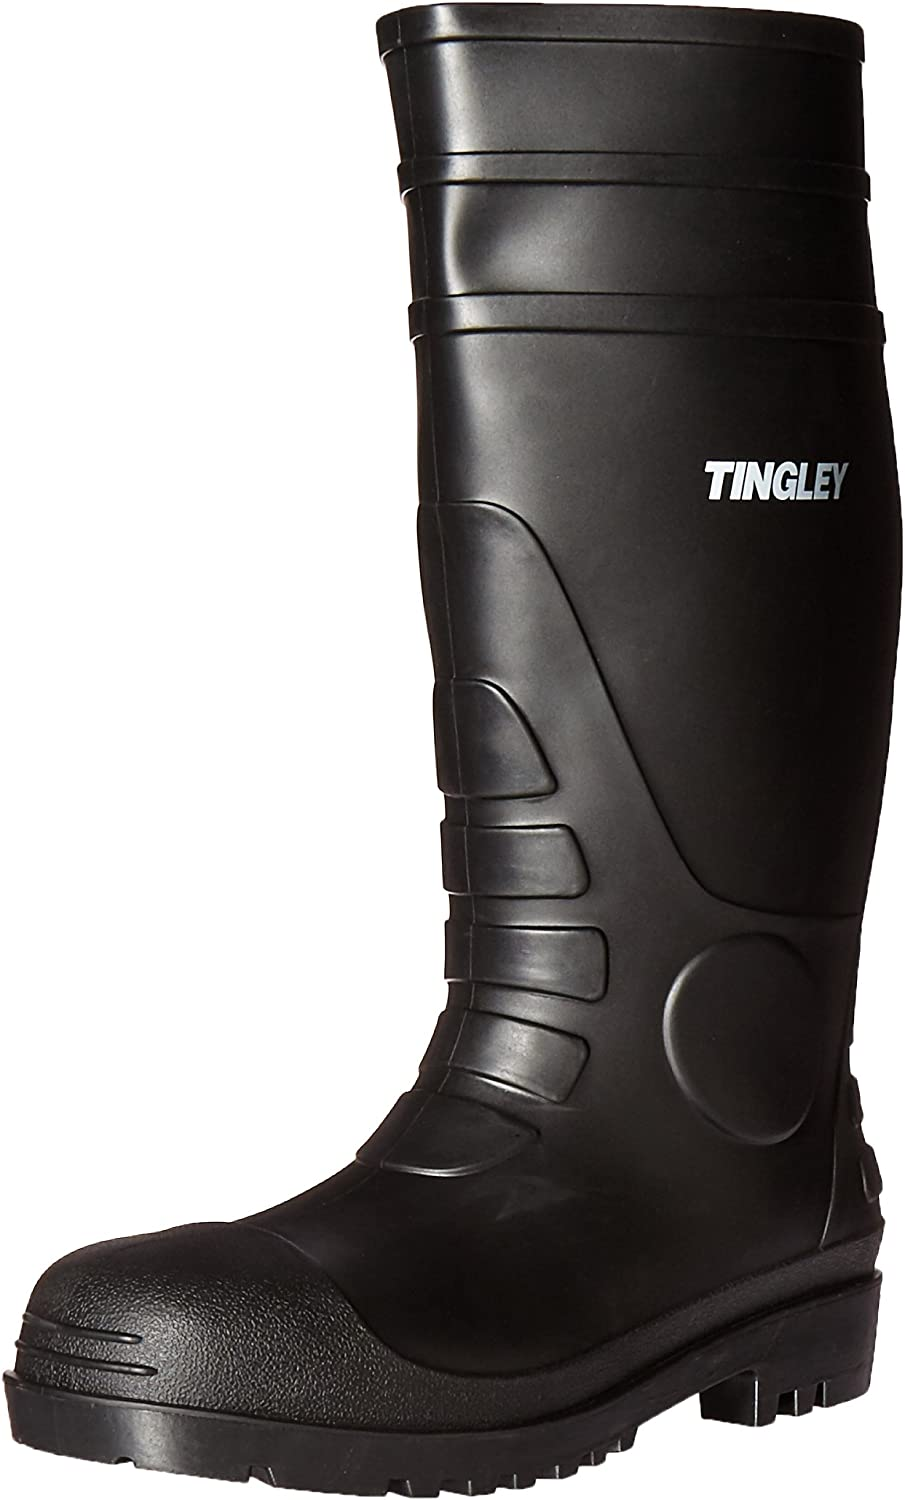 Tingley 31151 Economy SZ9 Kneed Boot for Agriculture, 15-Inch, Black